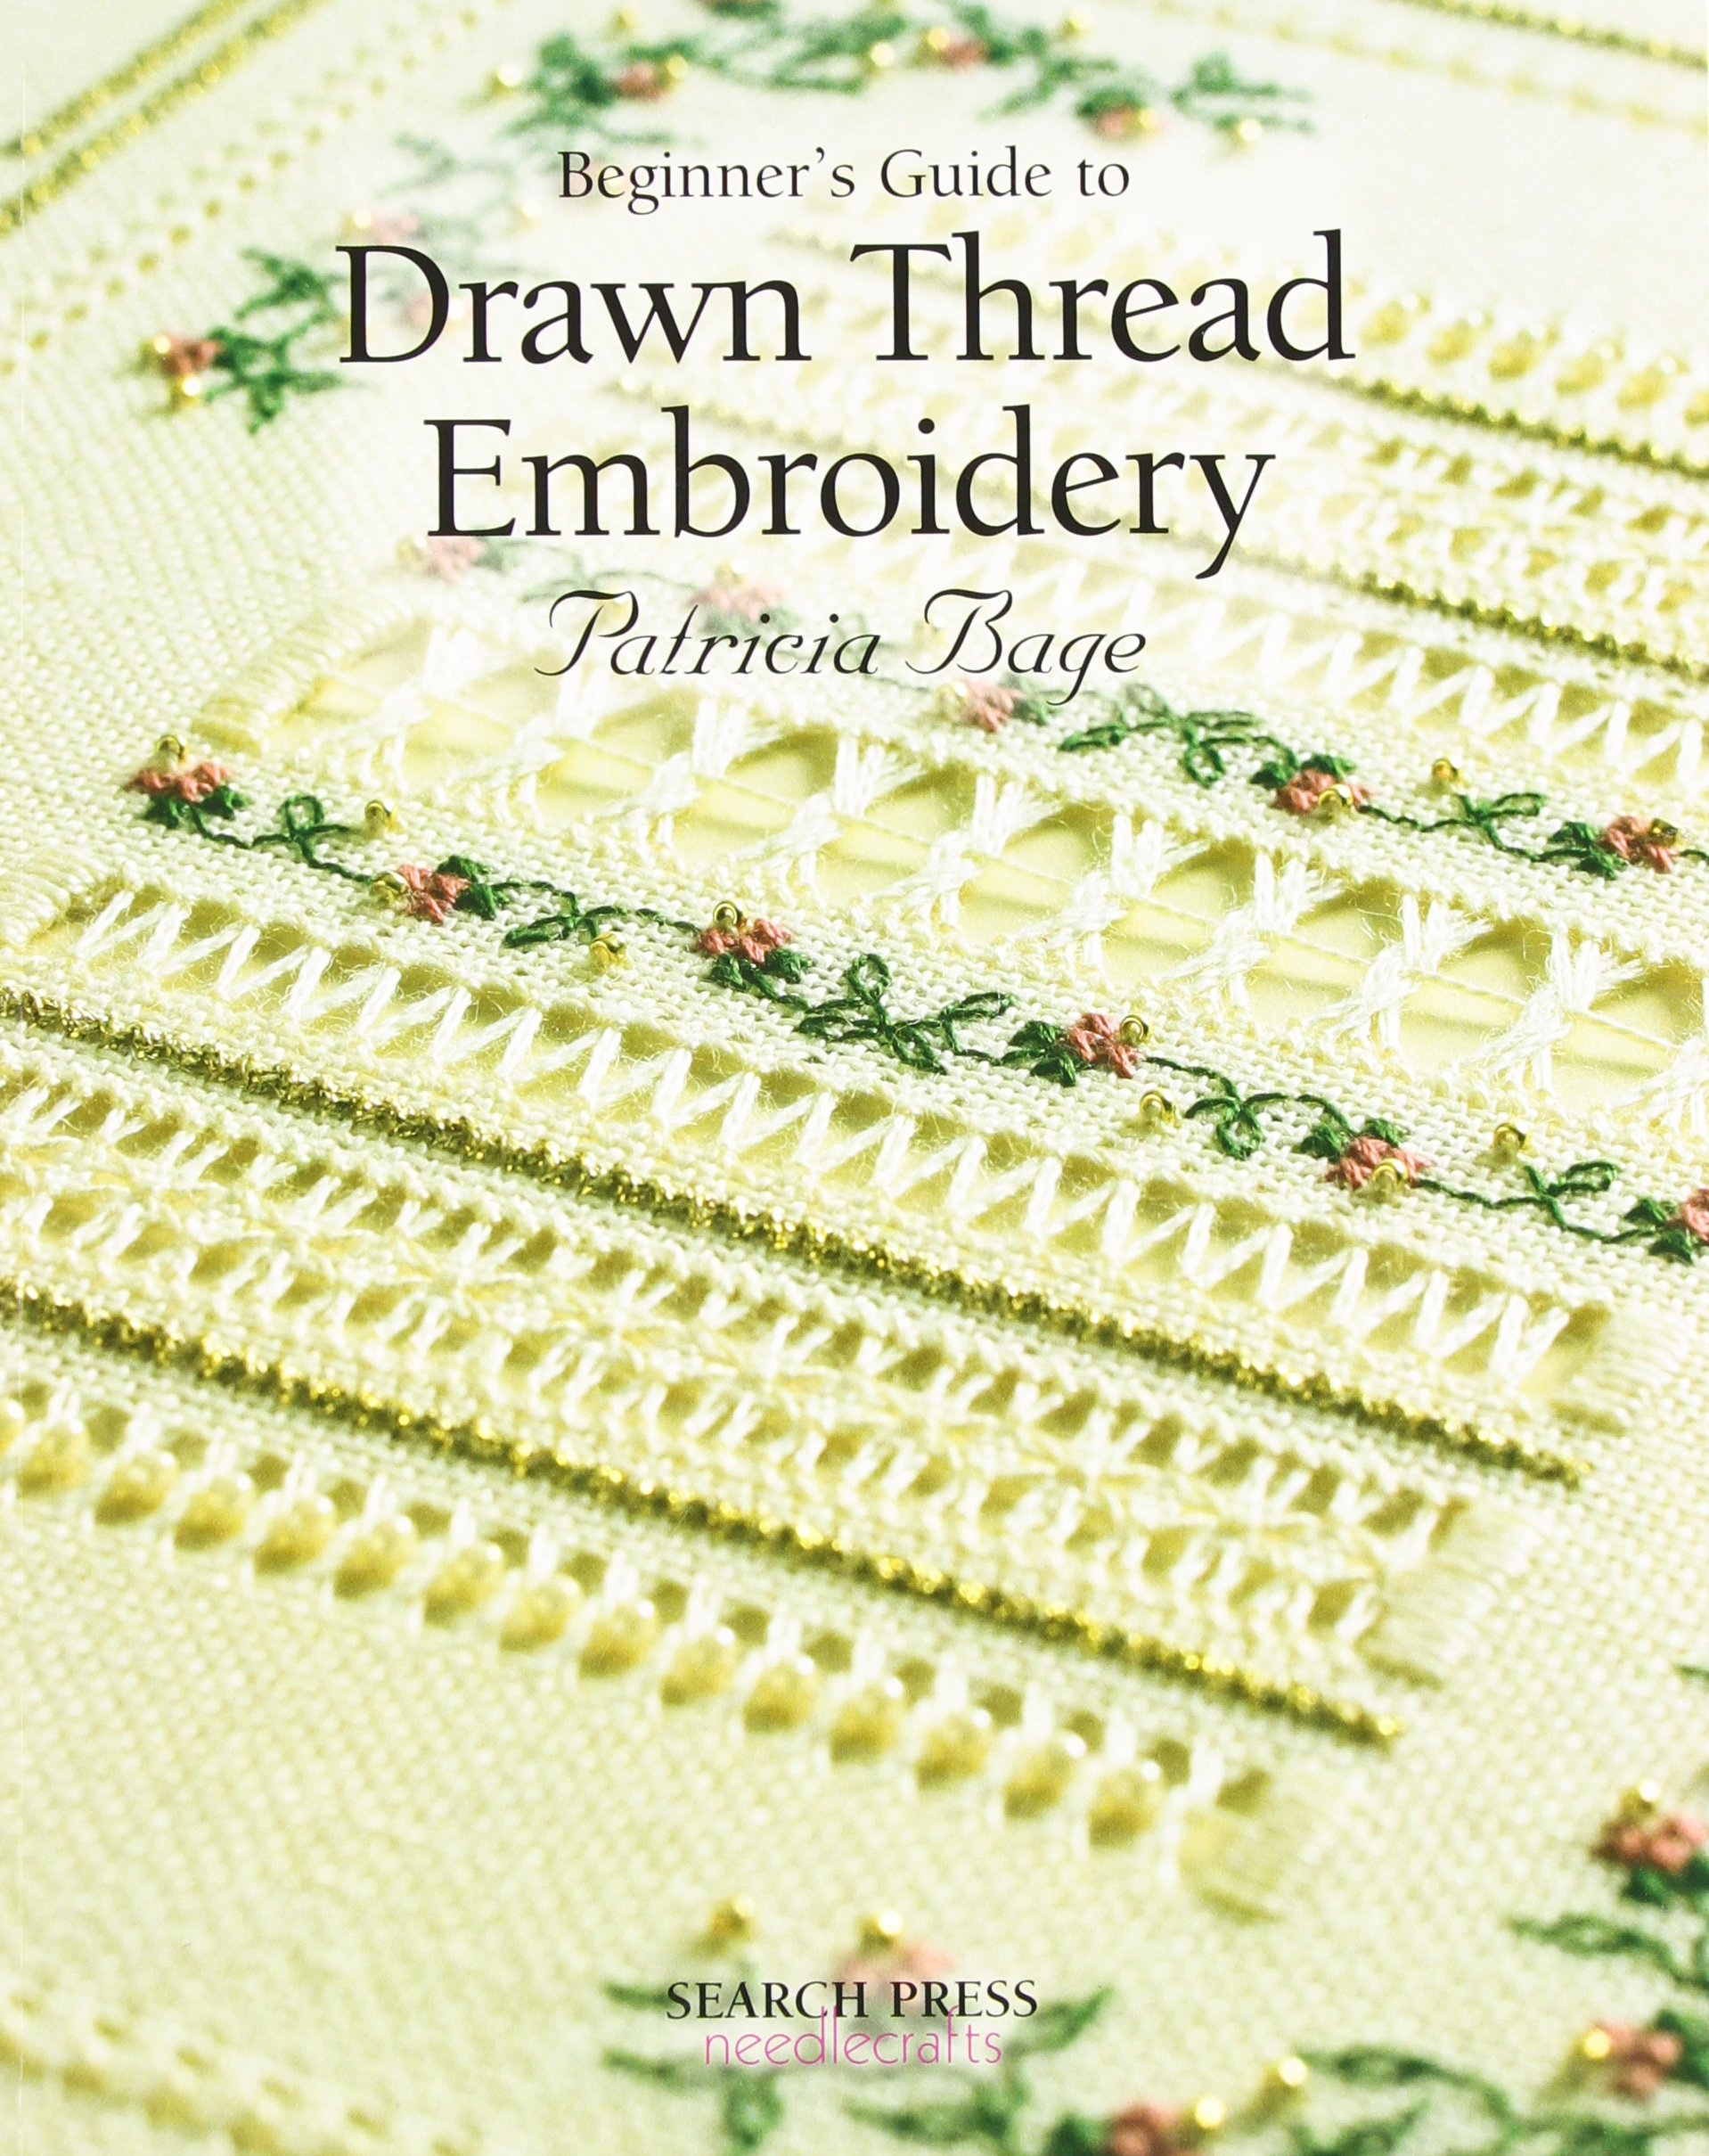 Rococo (embroidery) for beginners: schemes and tips